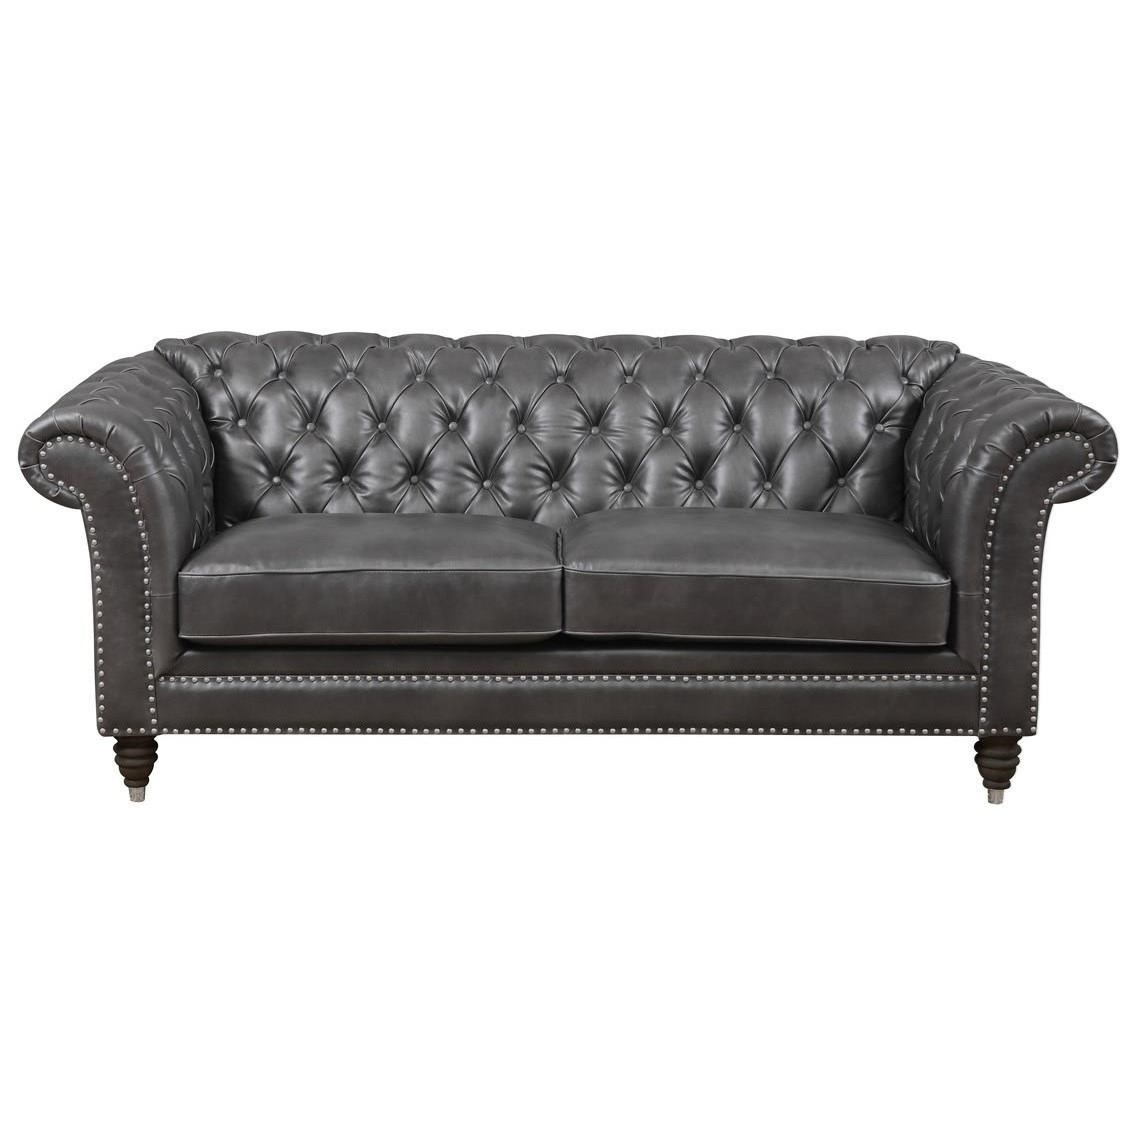 Capone Loveseat by Emerald at Northeast Factory Direct